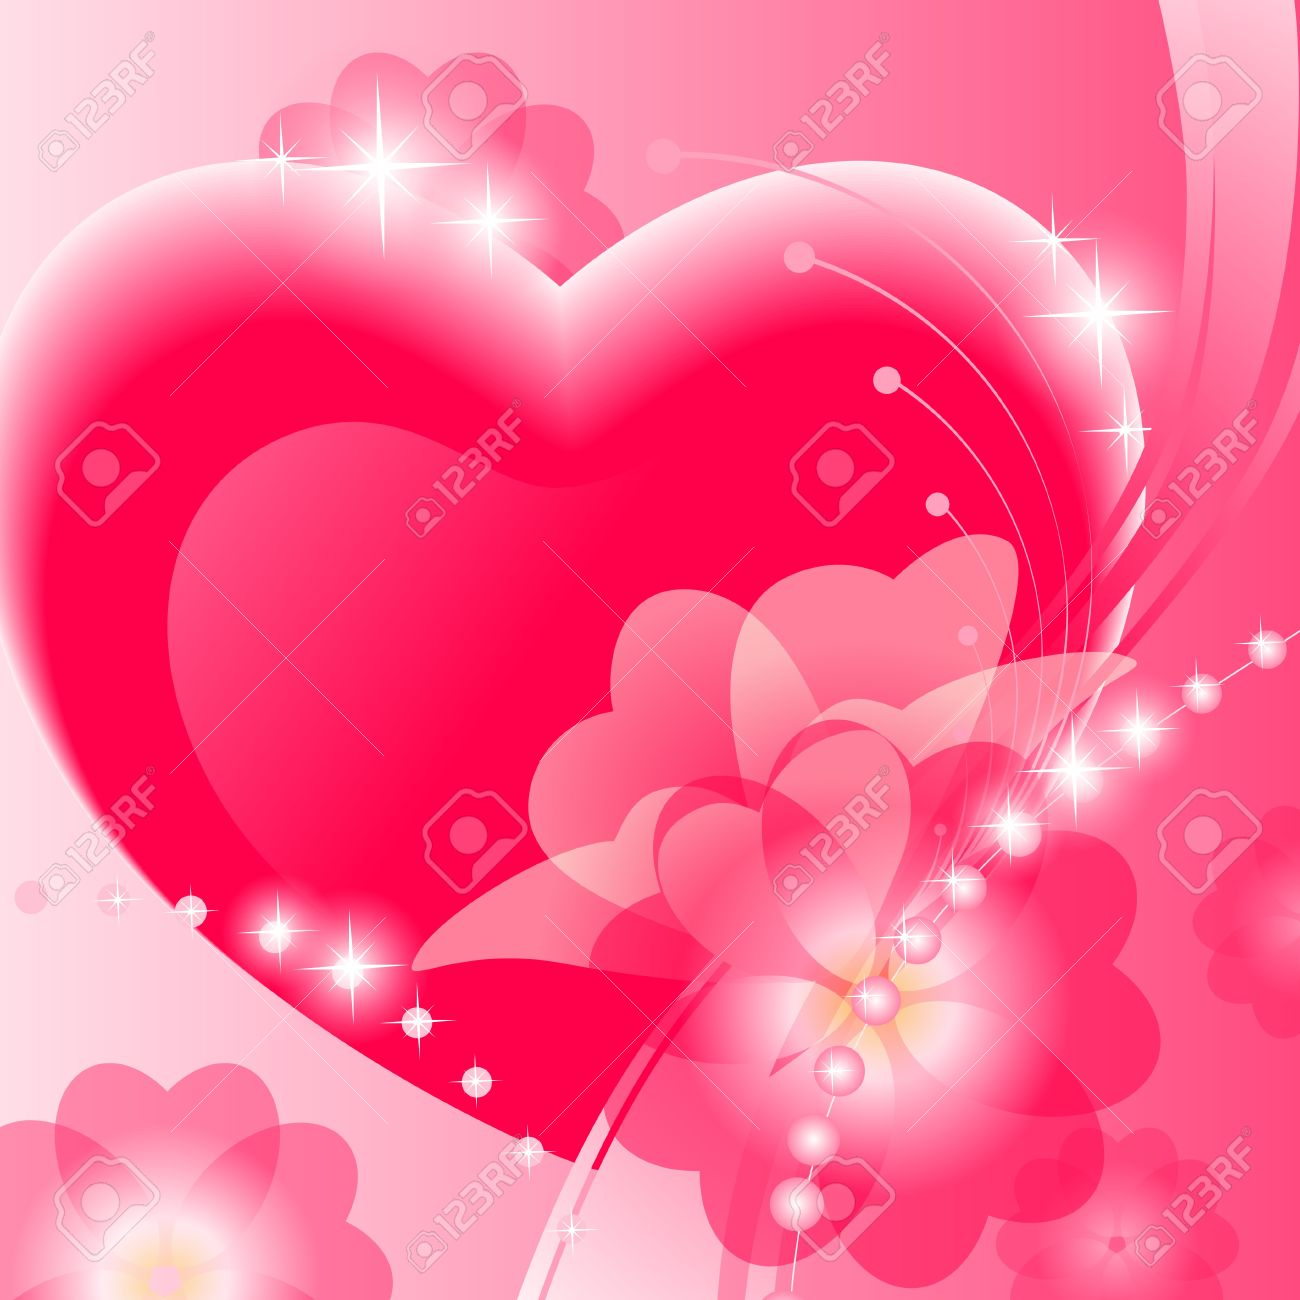 Abstract Valentine Background With Heart And Flower On Pink Stock